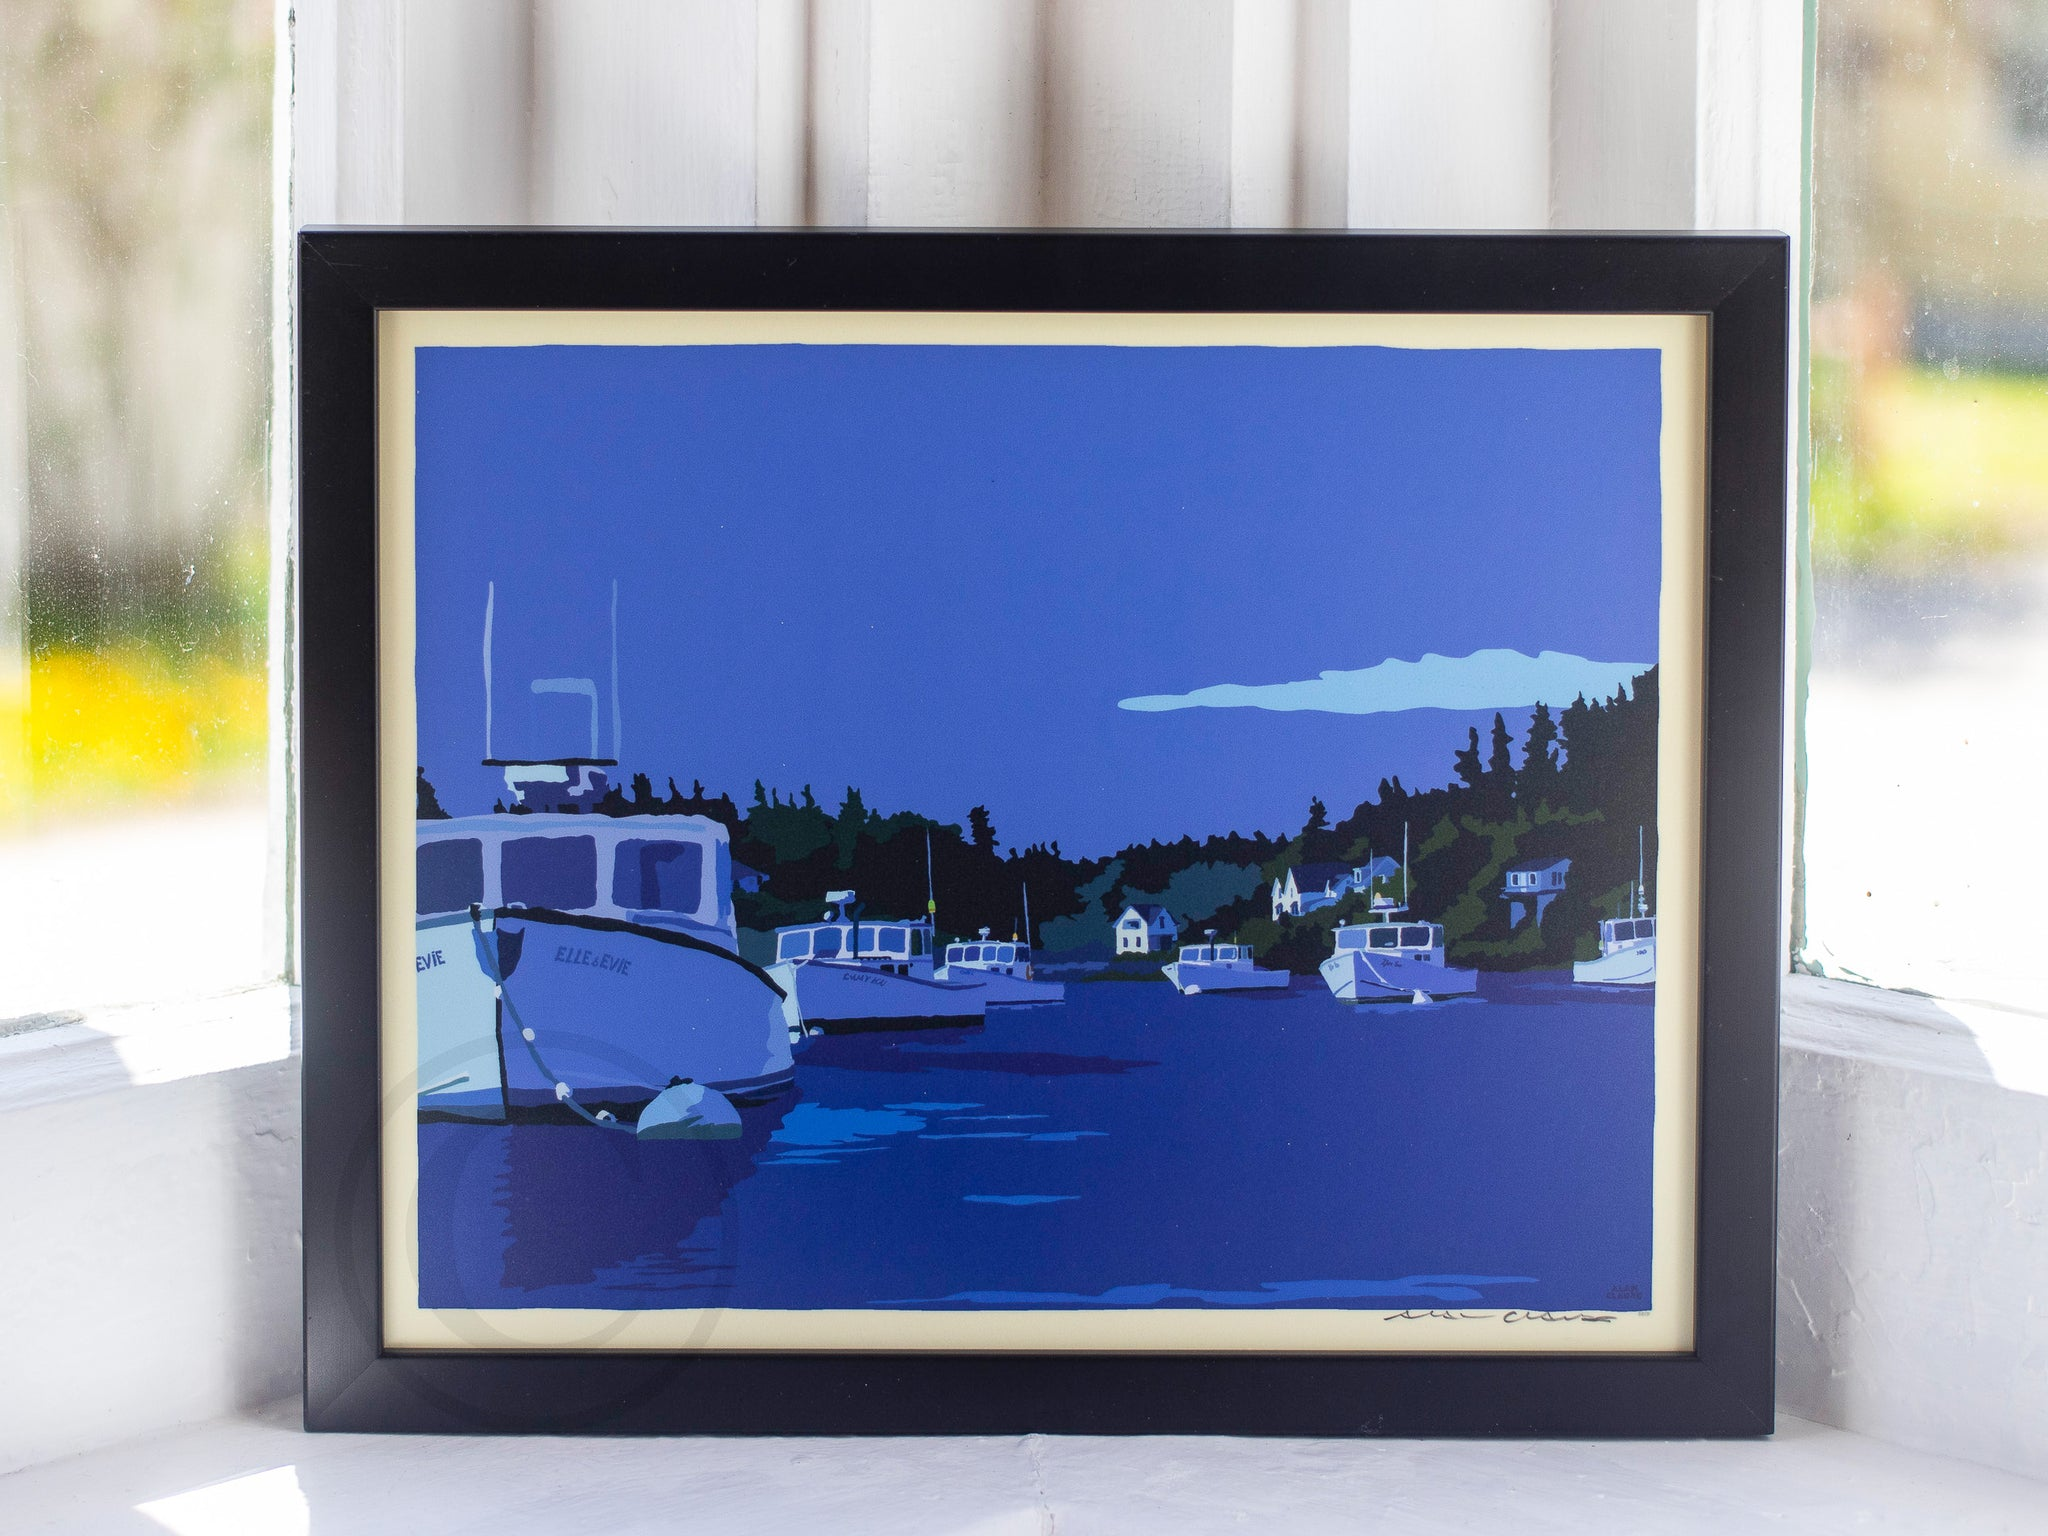 "Moonlight Over Port Clyde Art Print 8"" x 10"" Framed Wall Poster By Alan Claude"